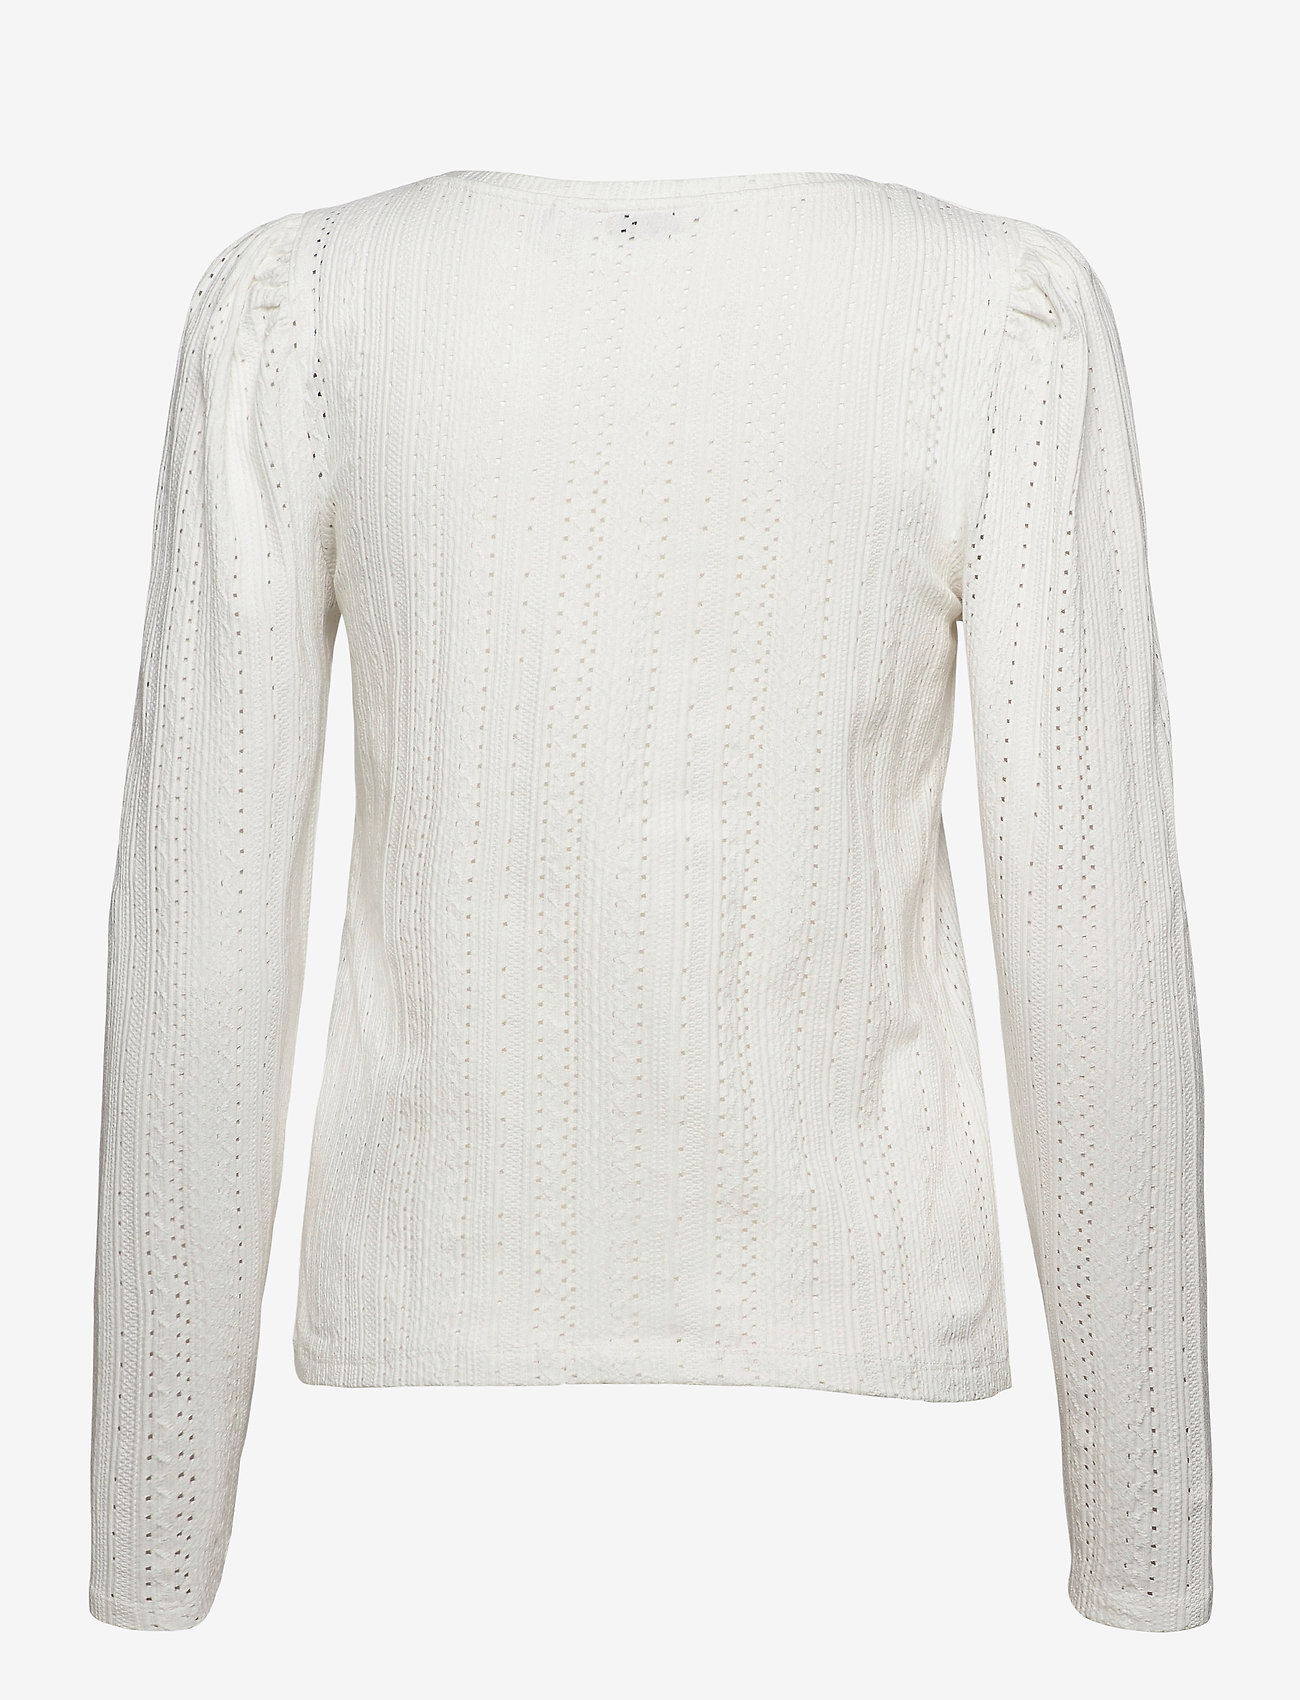 b.young - BYPIANNA LACE TSHIRT - - long-sleeved tops - off white - 1